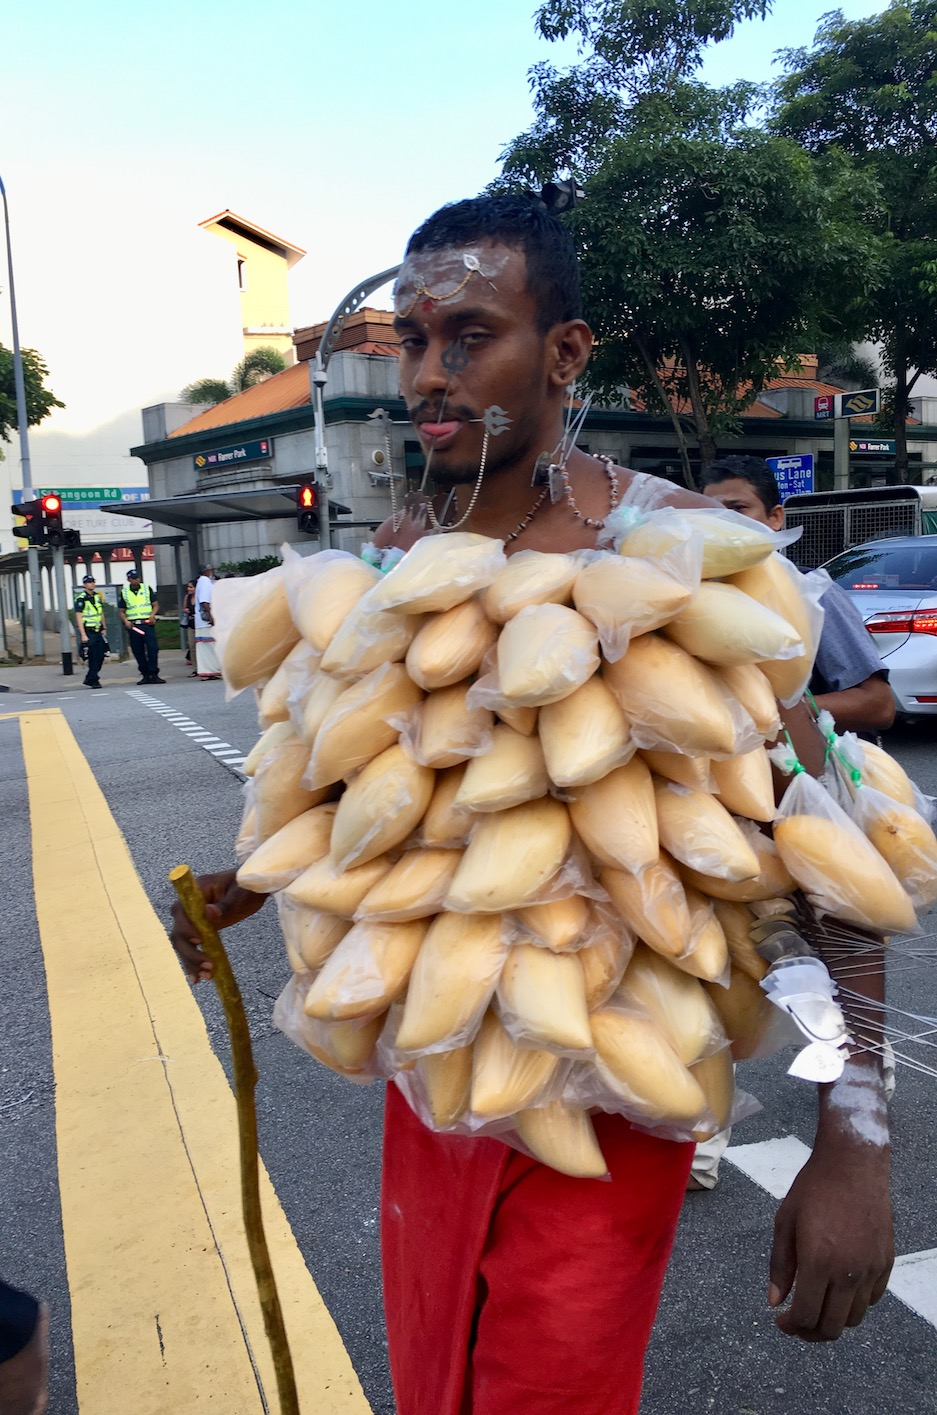 Devotee carrying dozens of mangoes hung by hooks. Photo: Patti Neves